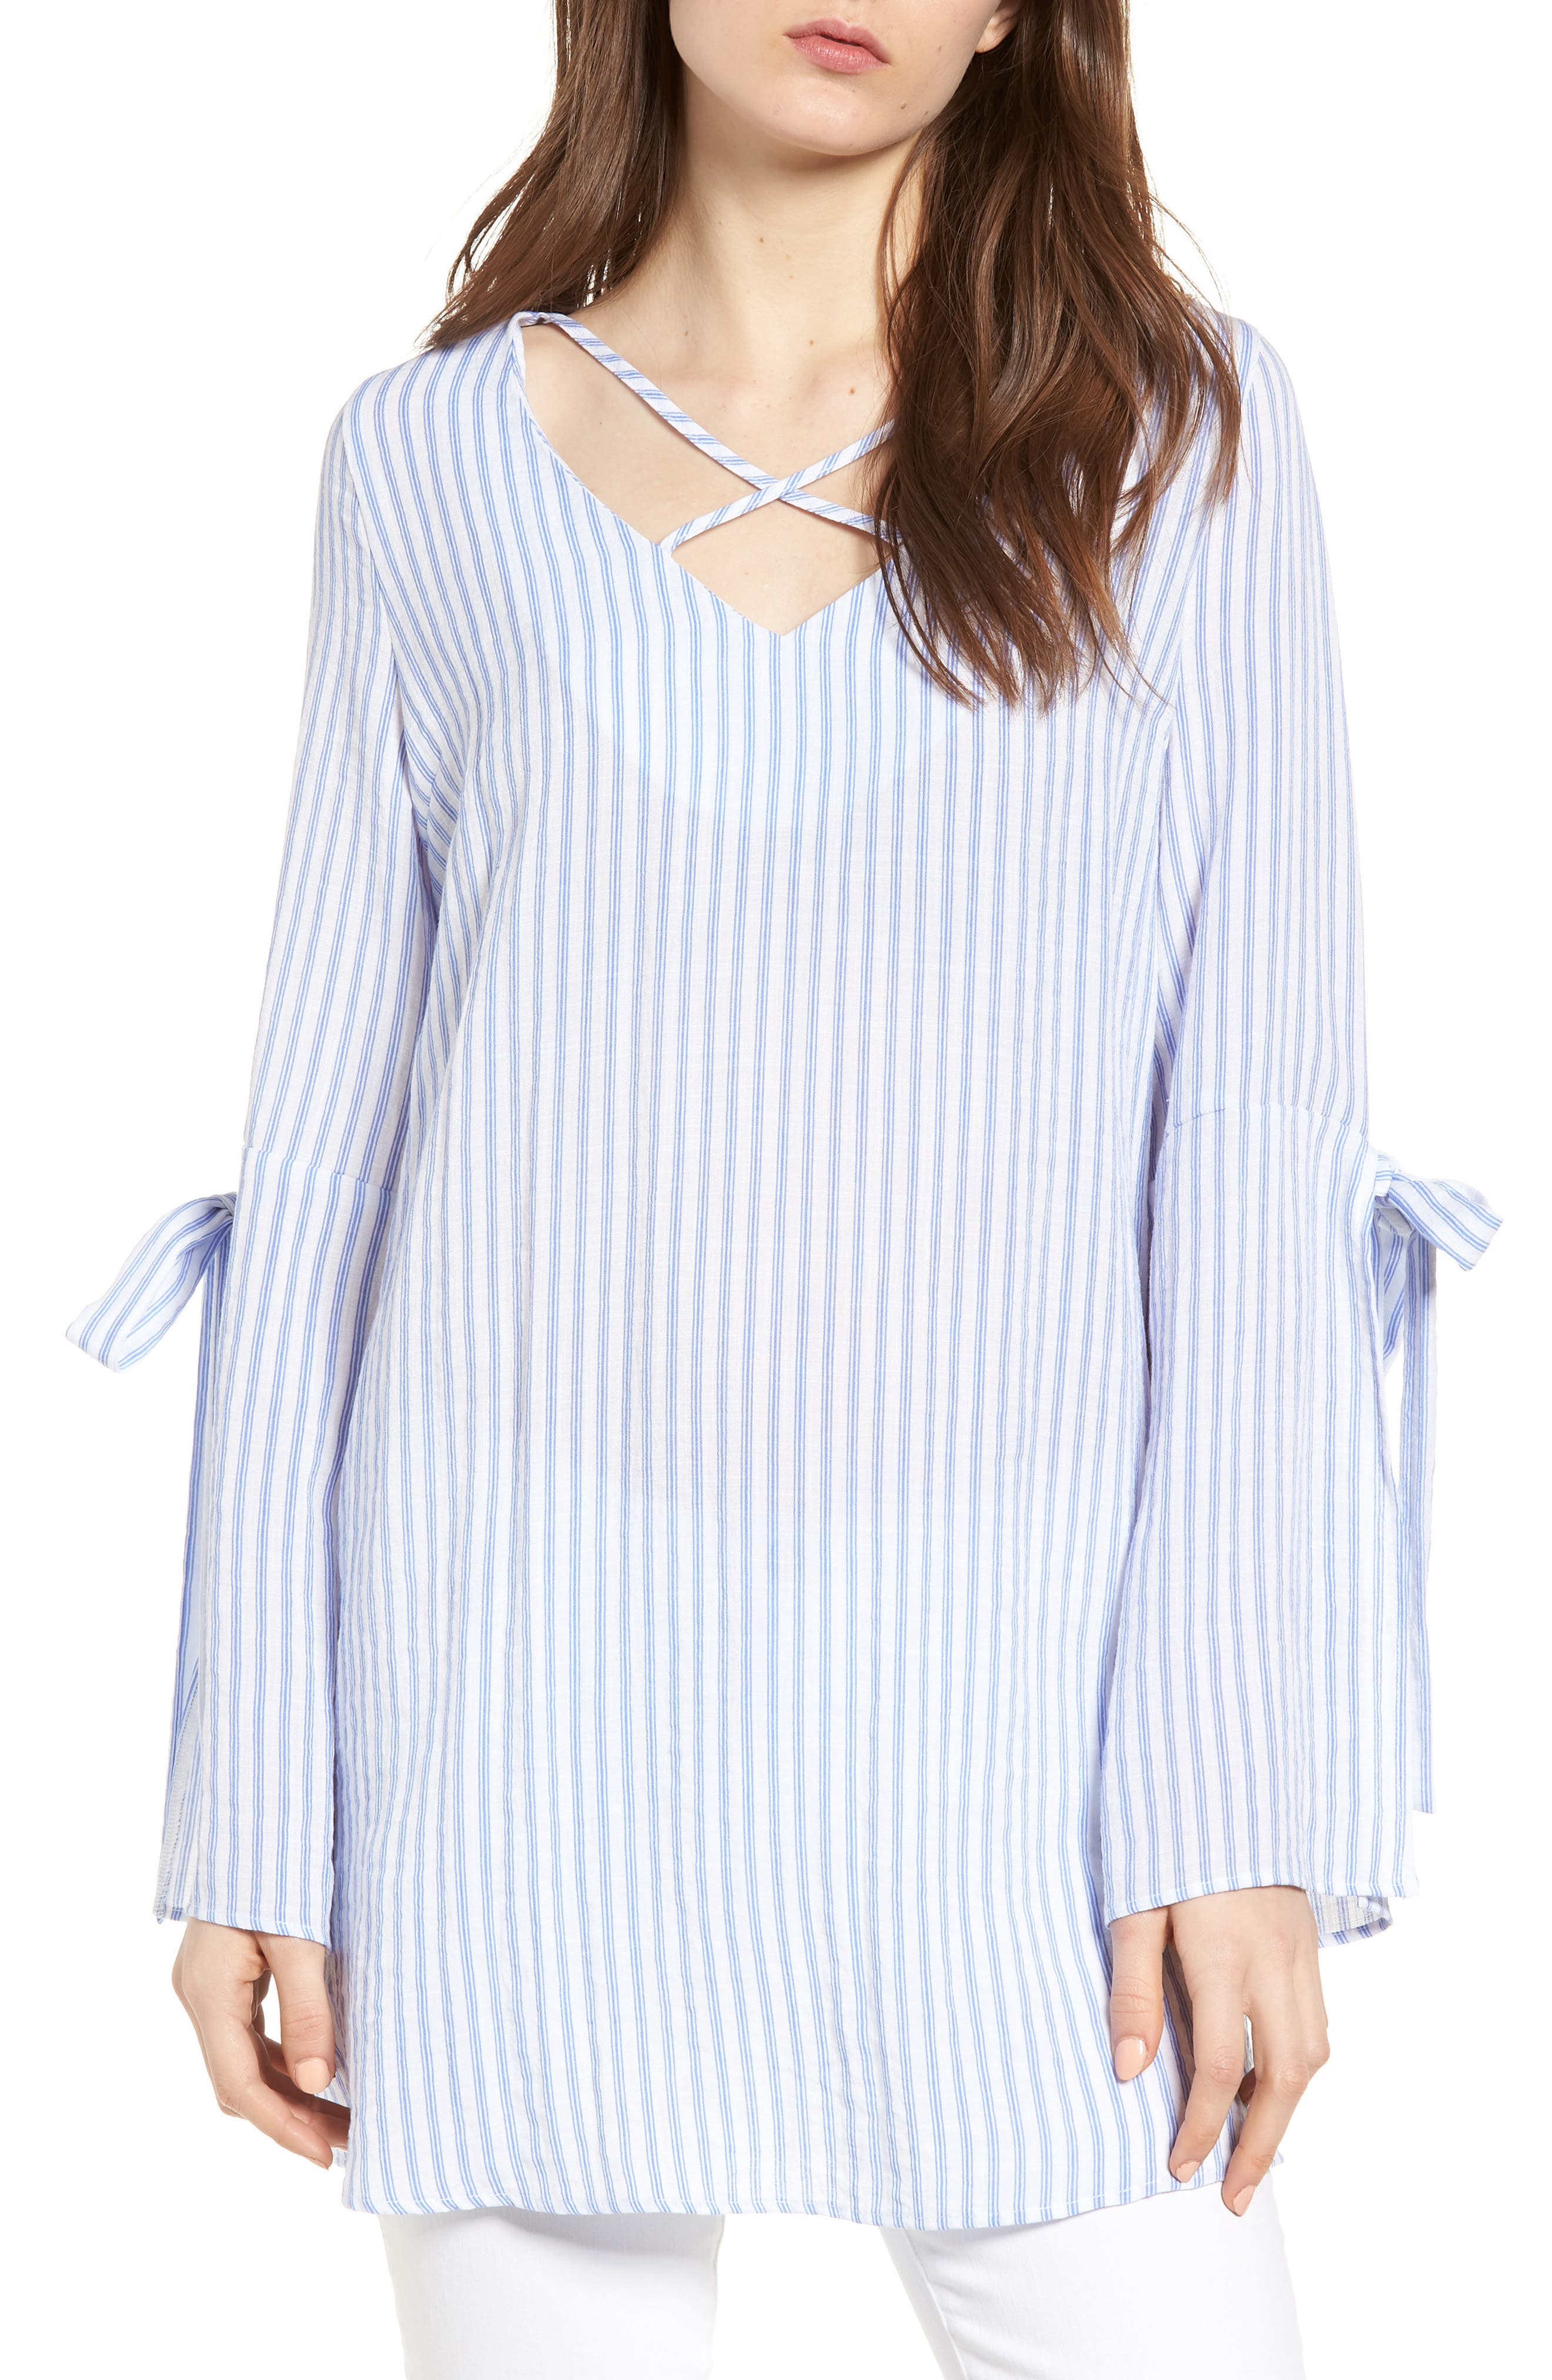 Bishop + Young Stripe Tunic Top,                         Main,                         color, 400